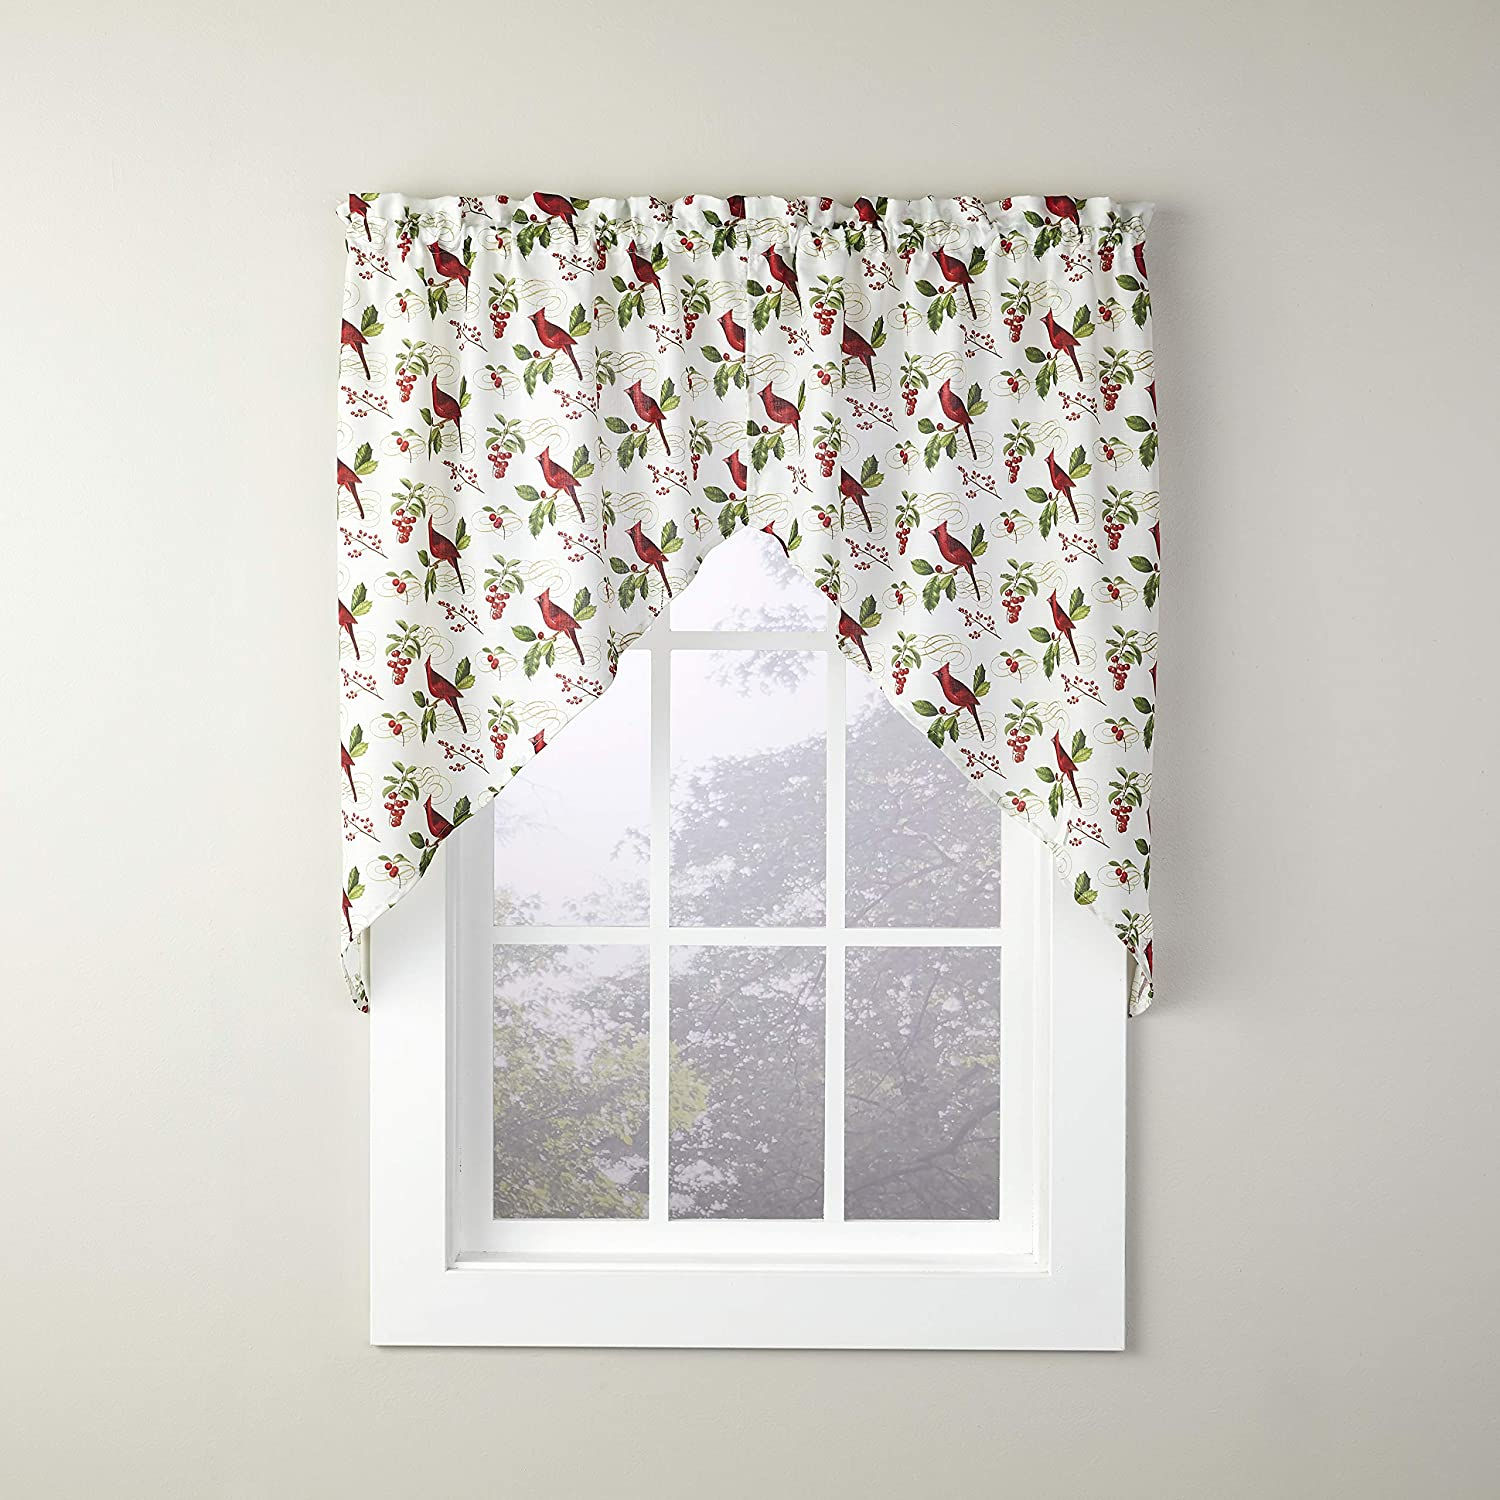 SKL Home by Saturday Knight Ltd. Cardinals & Berries Swage Valance Pair, 58 Inches x 36 Inches, Multicolored, 2 Pack